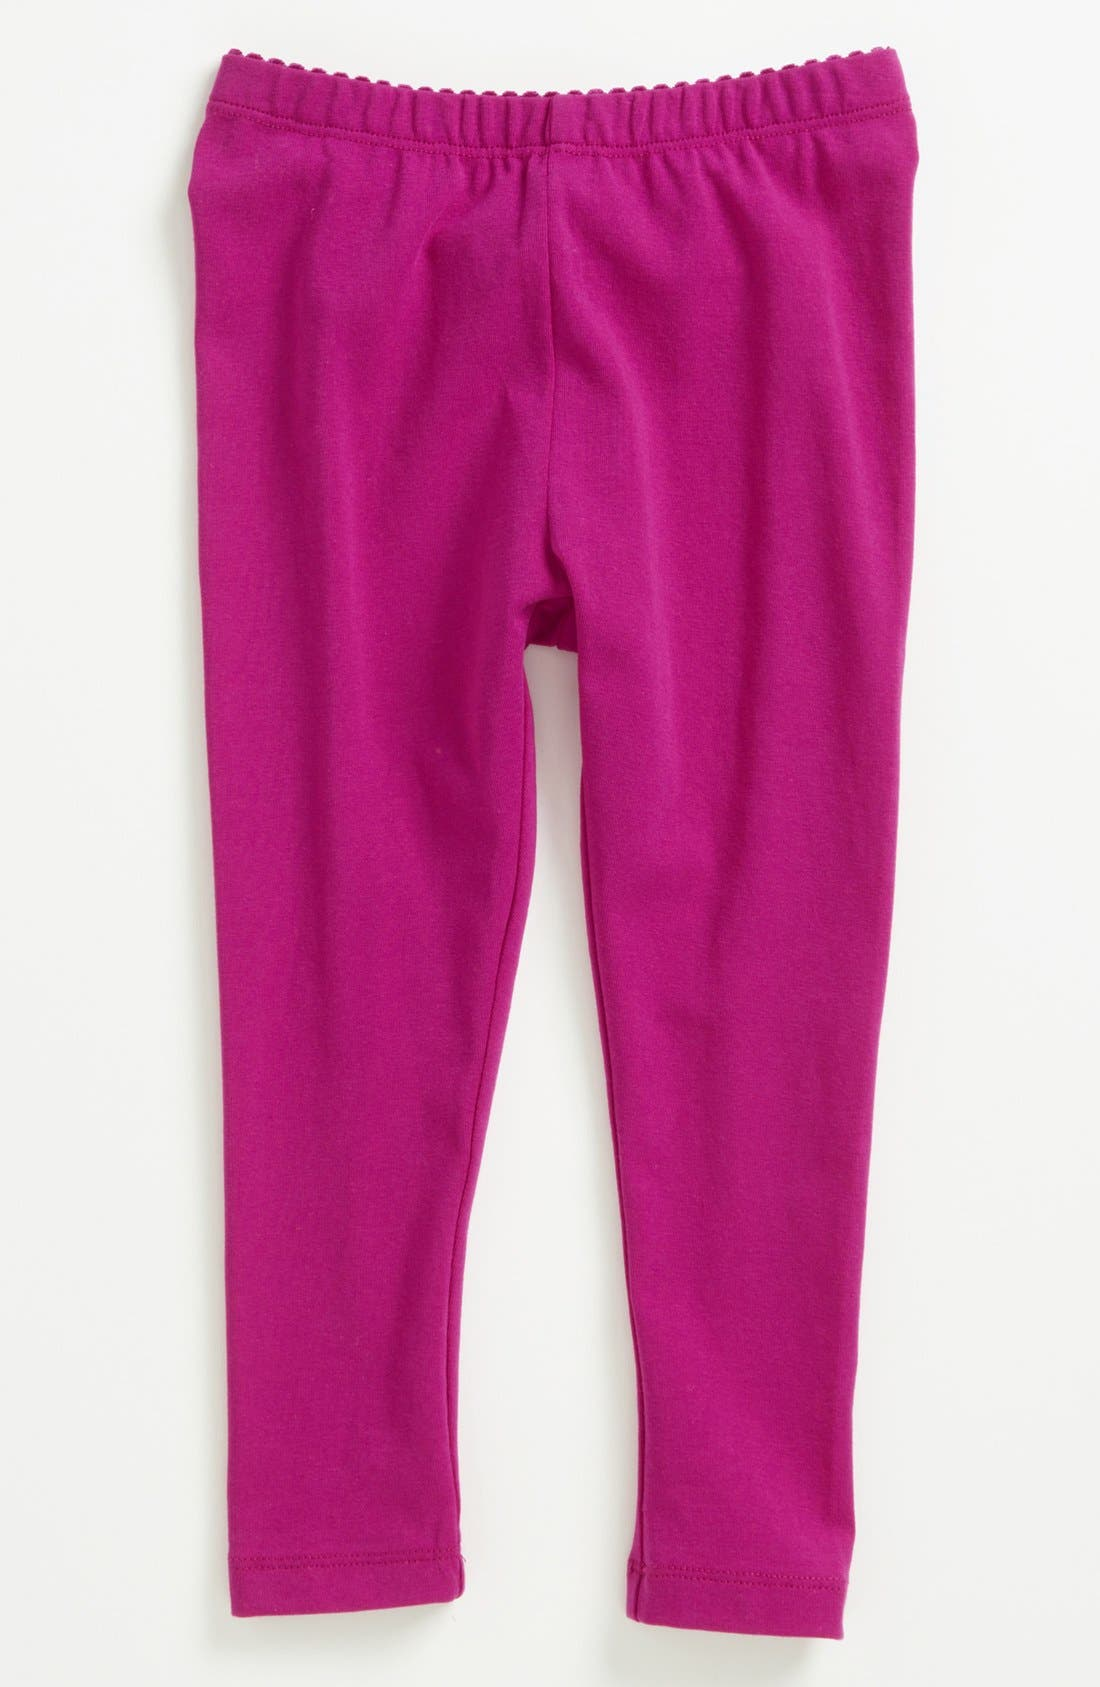 Alternate Image 1 Selected - Tea Collection Skinny Stretch Leggings (Baby Girls)